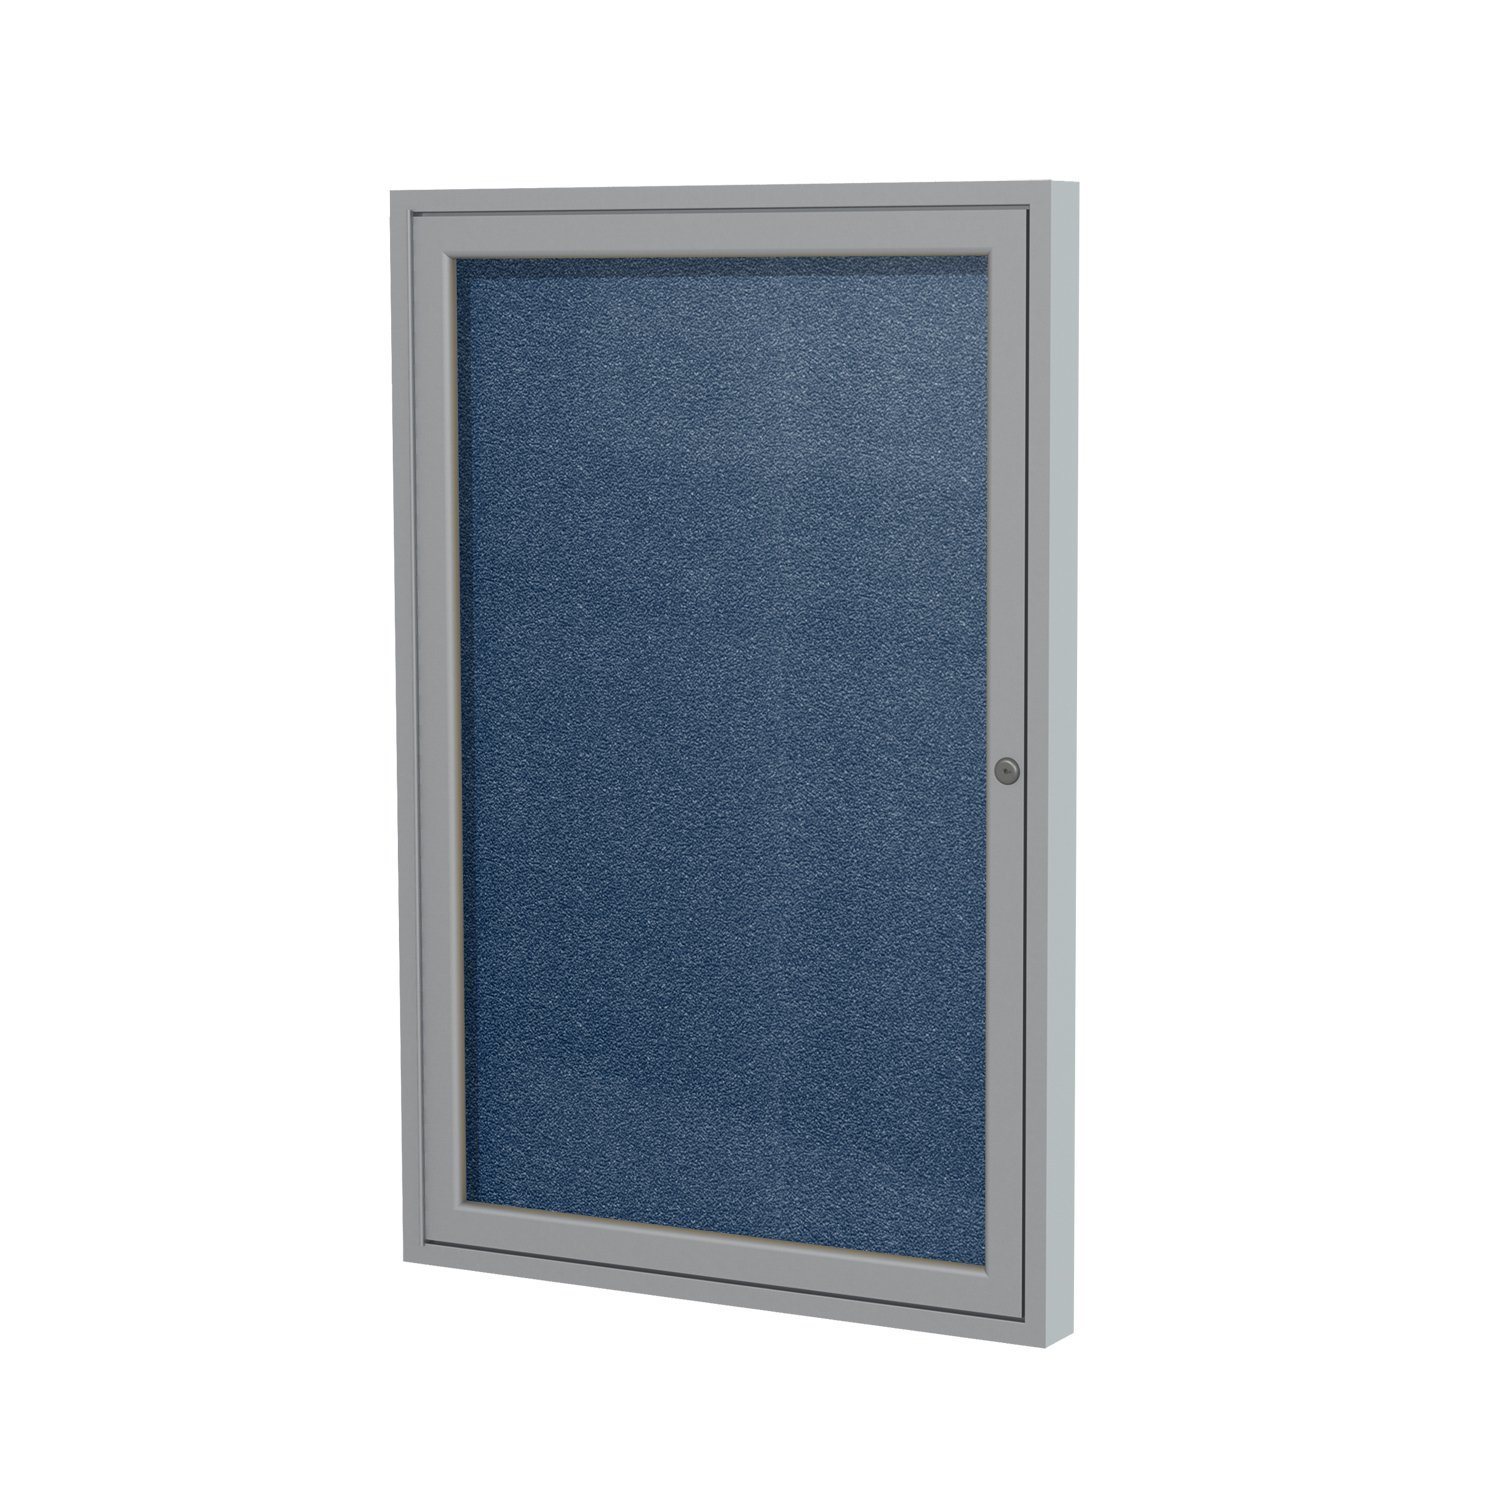 1 Door Outdoor Enclosed Bulletin Board Size: 2' H x 1'6 W, Frame Finish: Satin, Surface Color: Navy Ghent PA12418VX-195